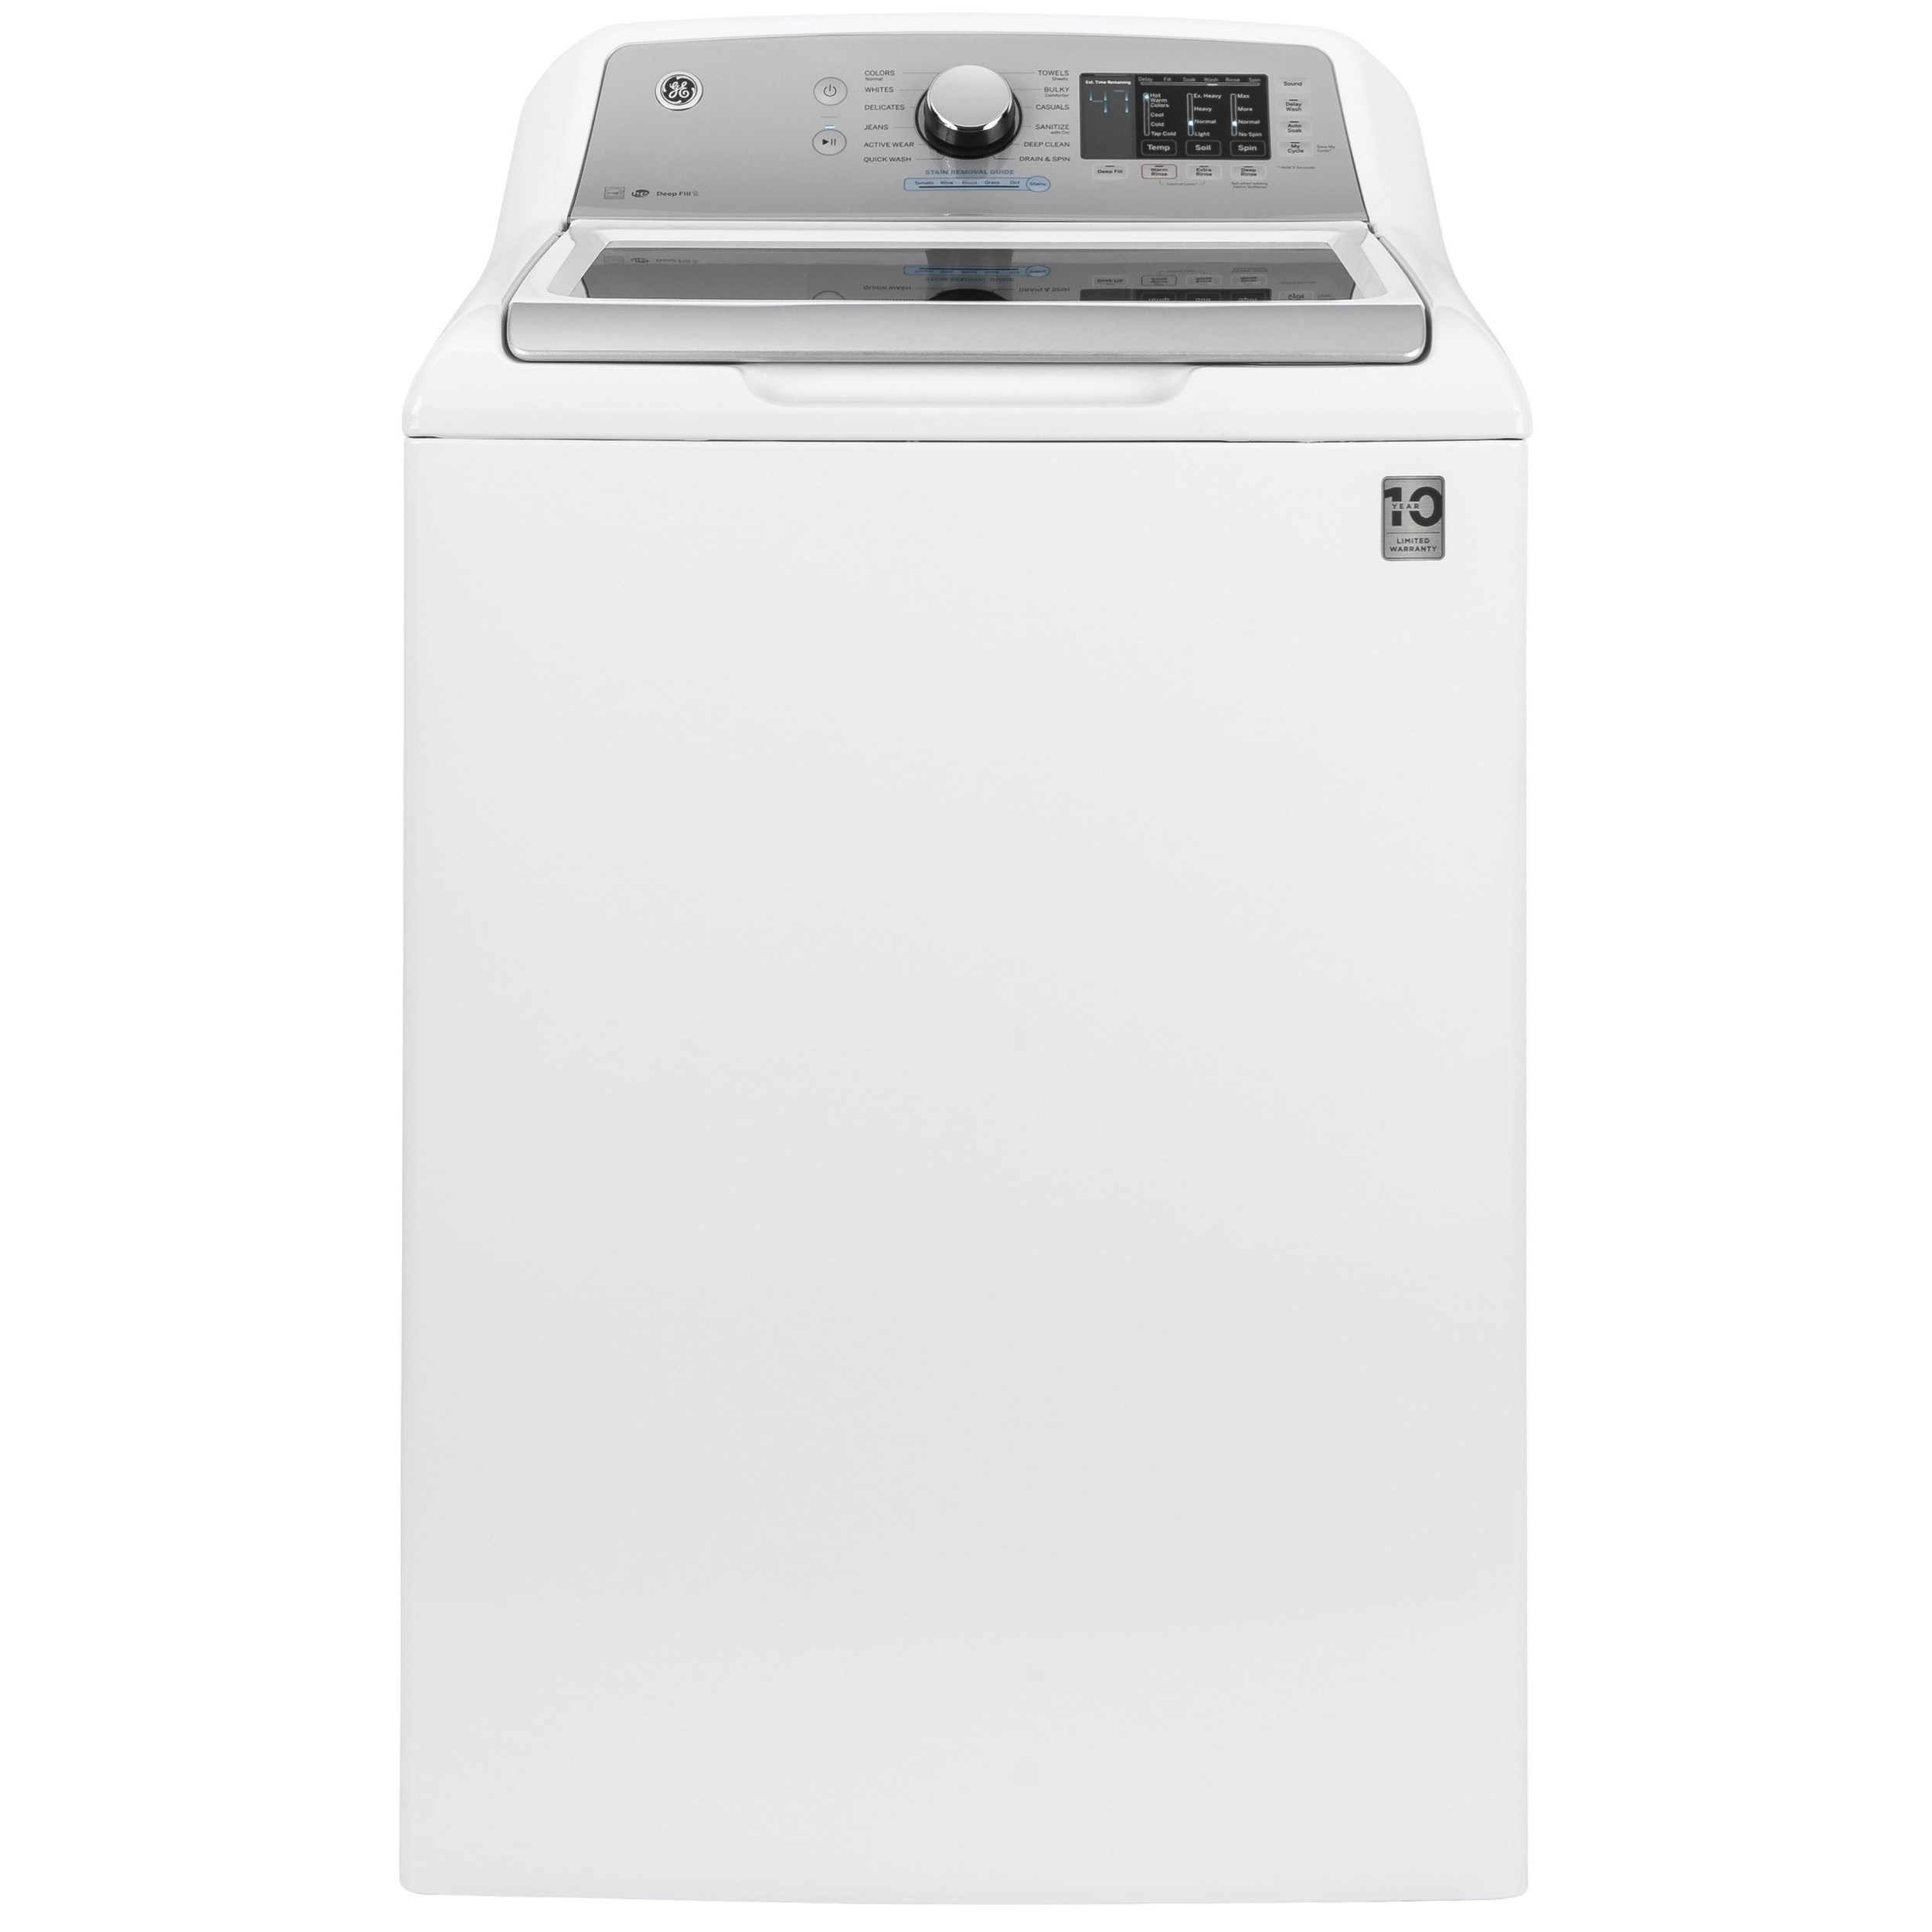 Top Load Washers - GE 4.6 cu. ft. Capacity Washer by GE Appliances at Furniture and ApplianceMart